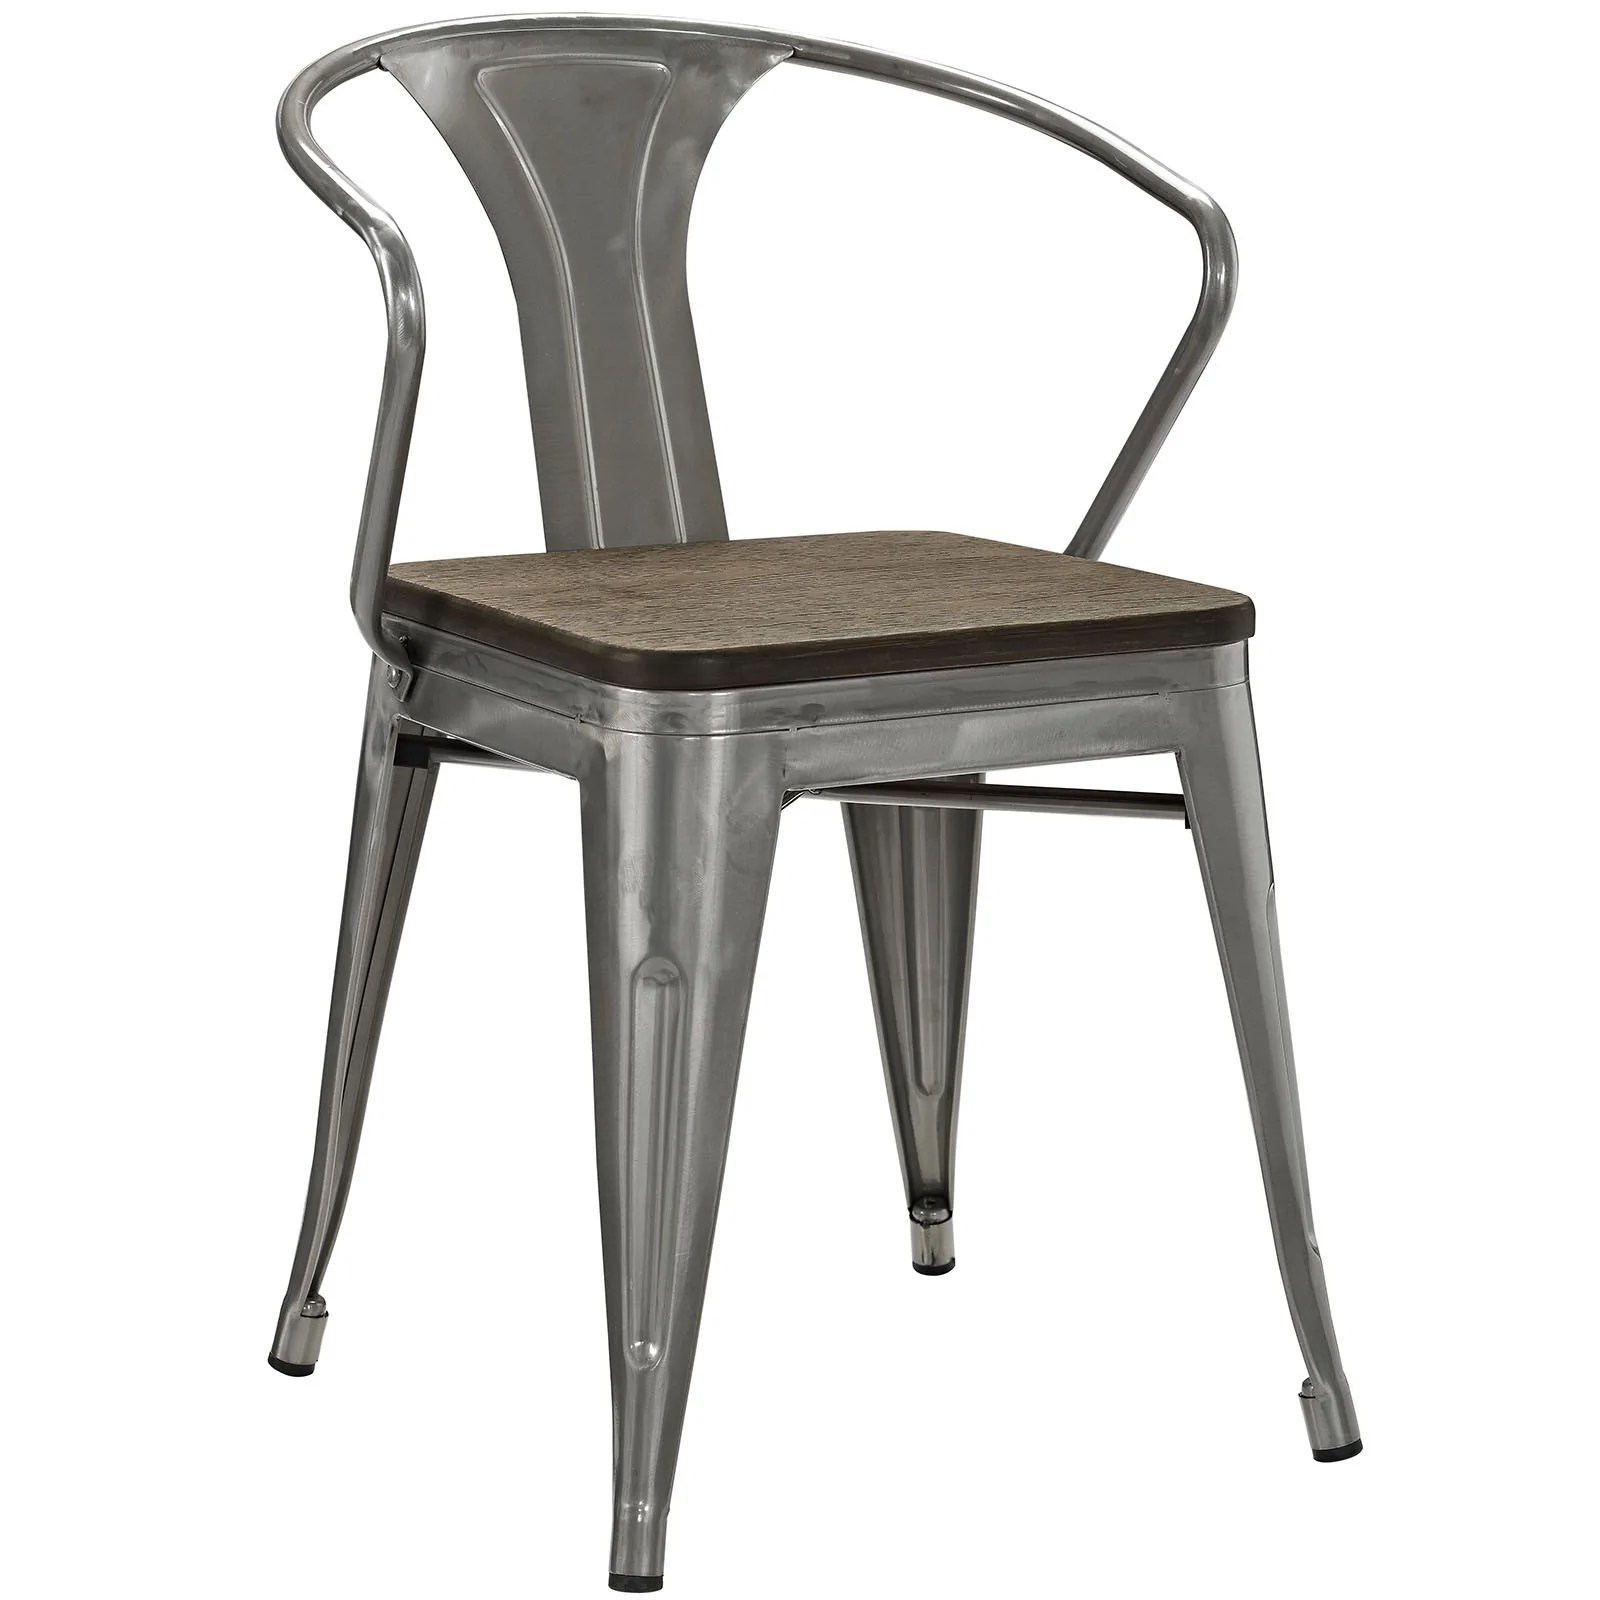 Bamboo Dining Chair Panora Bamboo Dining Chair Gunmetal Froy